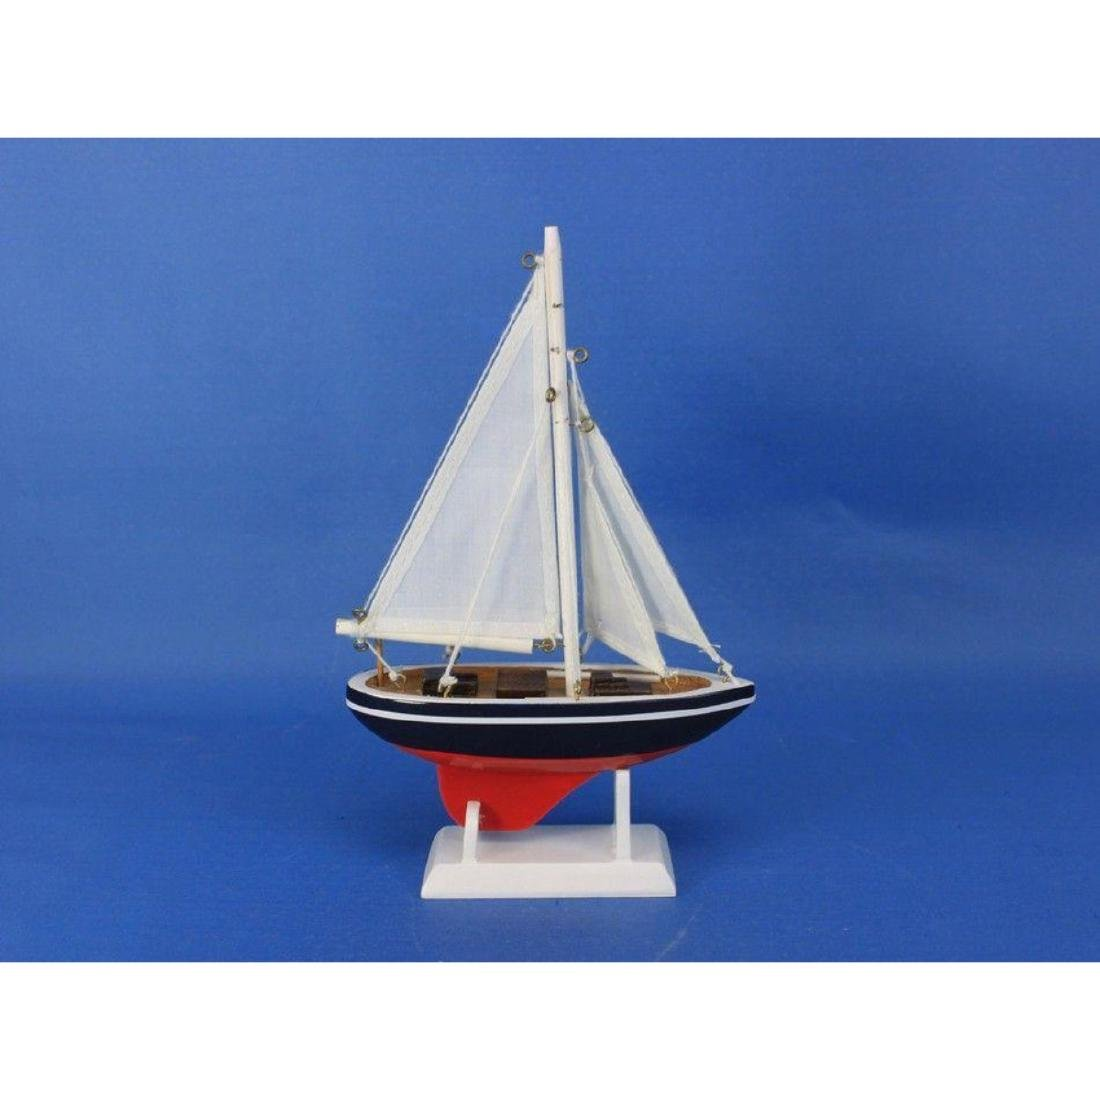 Wooden American Sailer Model Sailboat Decoration 9""